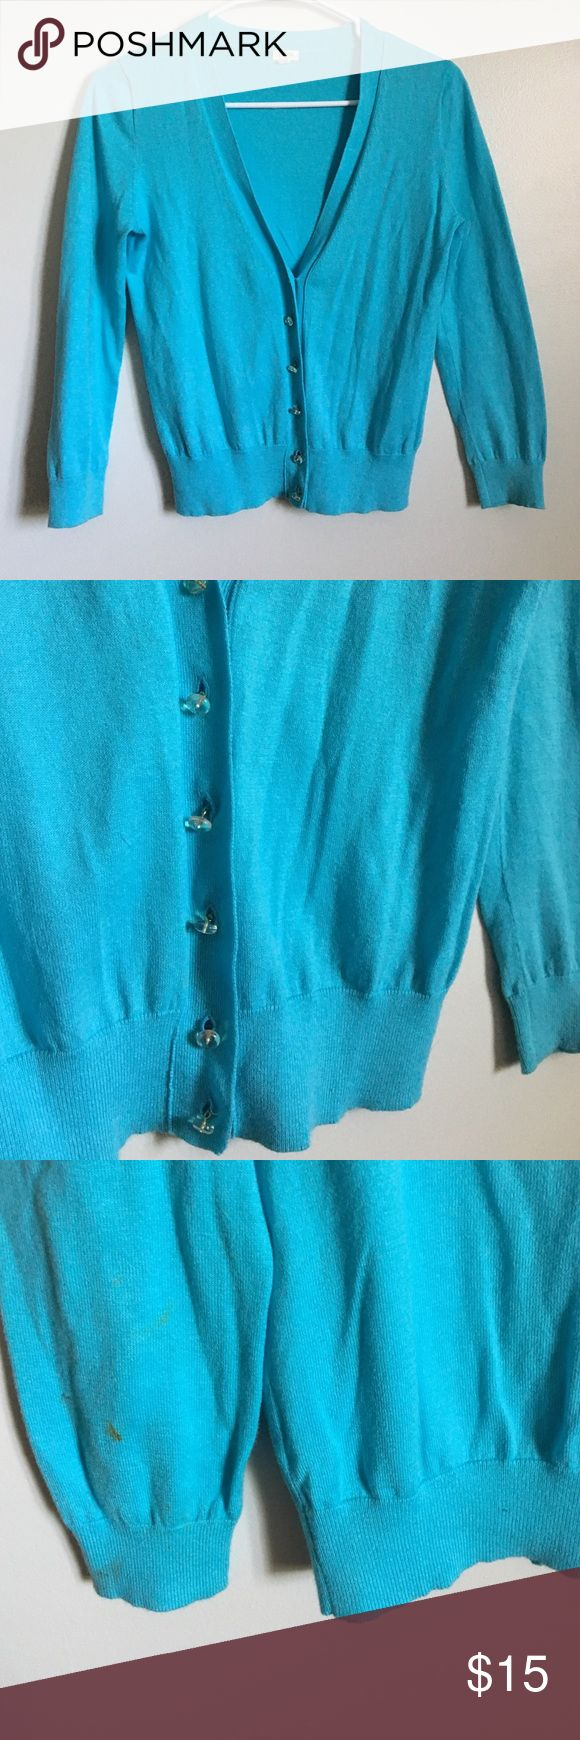 J.crew turquoise cardigan w crystal clear buttons Turquoise Cardigan from J.crew. V-neck style with crystal clear buttons. I did find a small stain on the back of one oft sleeves when listing but I have not tried to remove it- I feel pretty confident that it will come out. This is a perfect weight cardigan for spring and summer! J. Crew Sweaters Cardigans